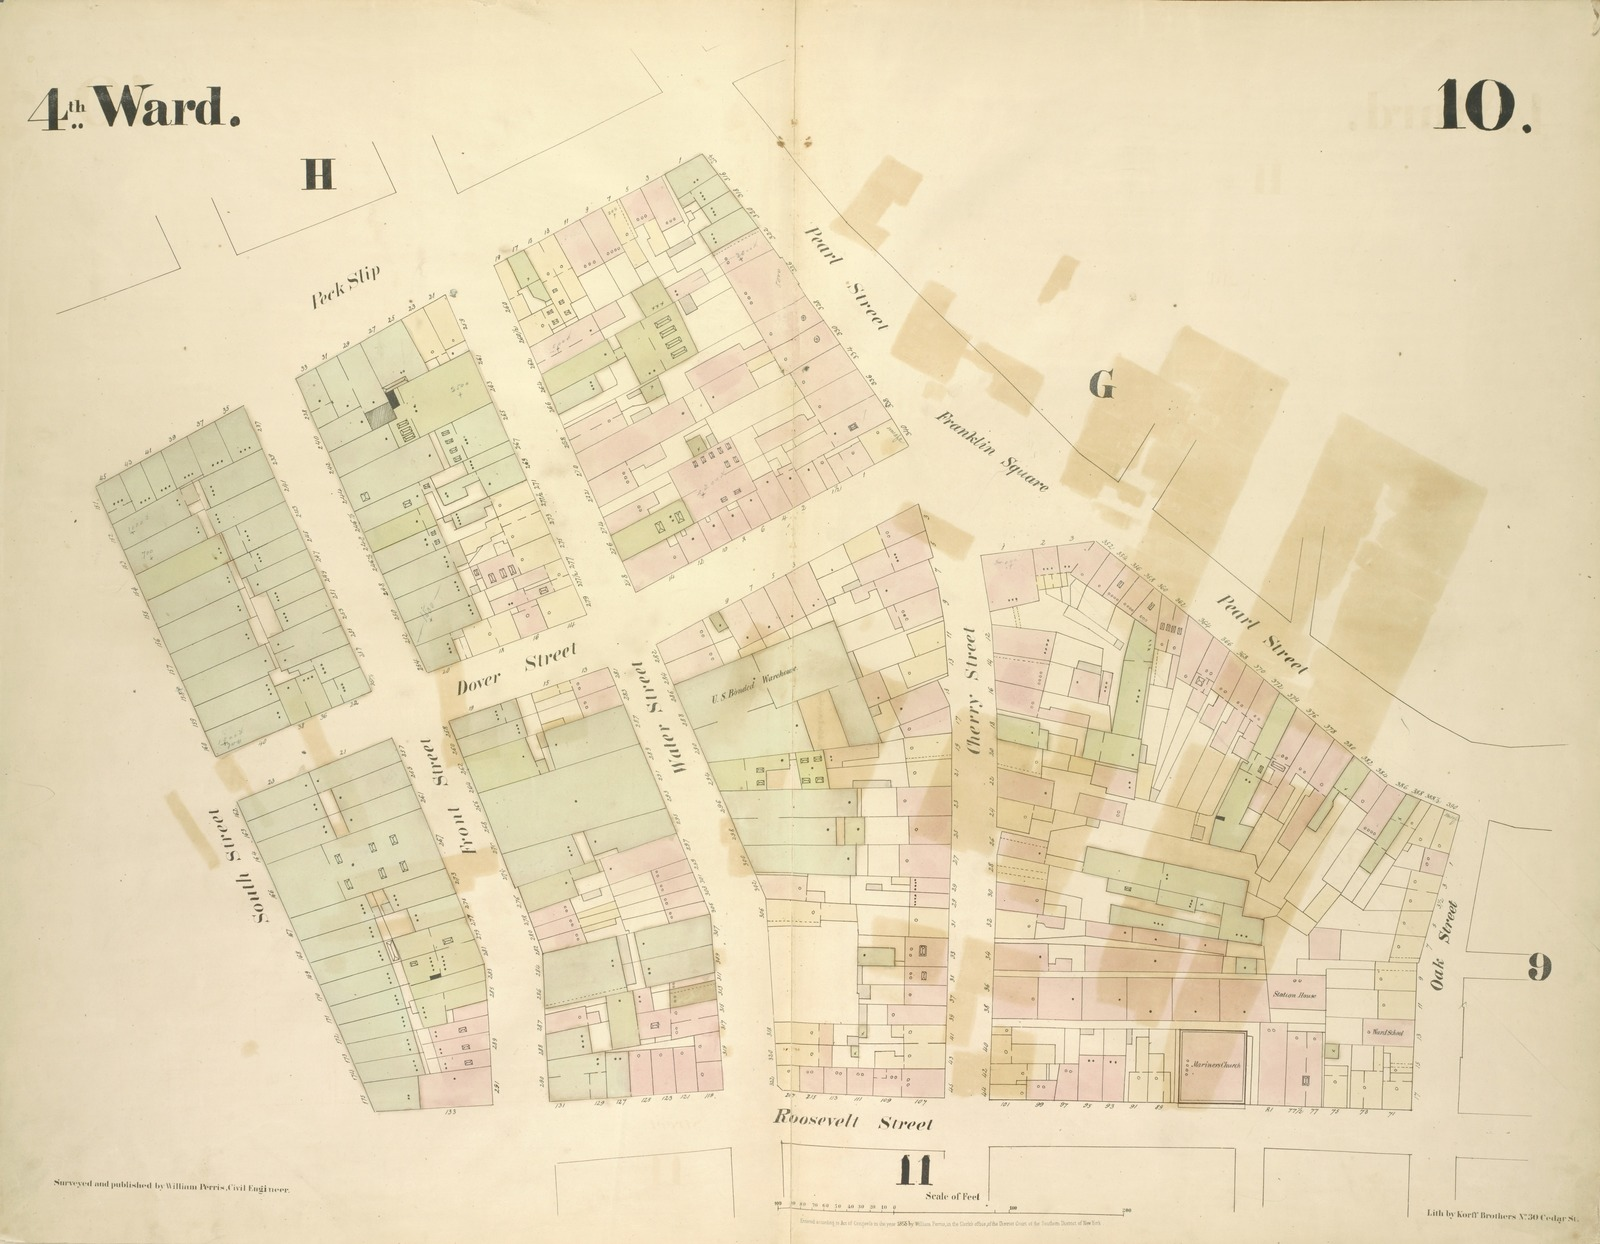 [4th Ward. Plate 10: Map bounded by Peck Slip, Pearl Street, Franklin Square, Pearl Street, Oak Street, Roosevelt Street, South Street; Including Dover Street, Front Street, Water Street, Cherry Street]